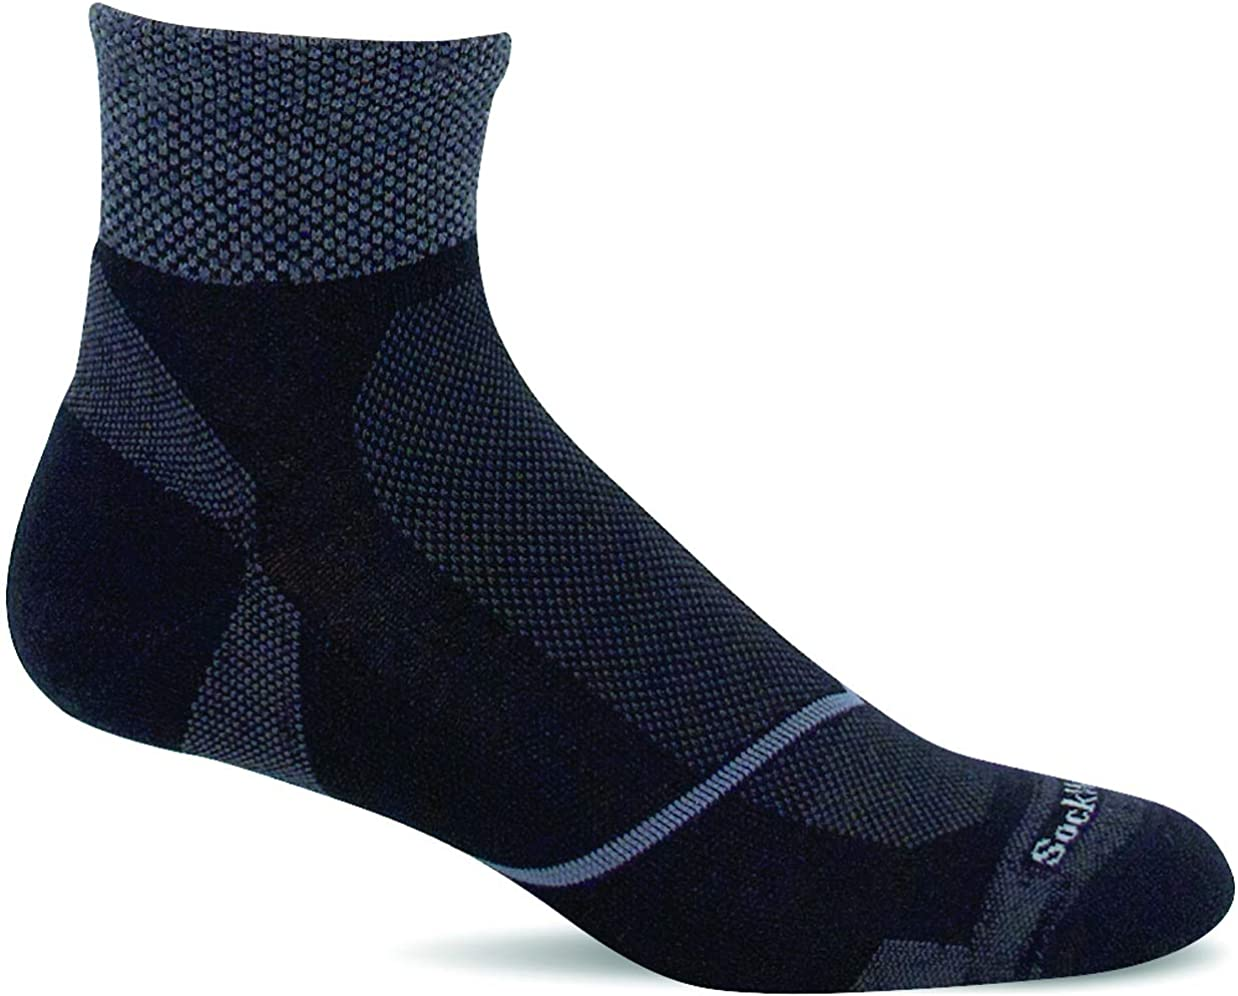 Sockwell Men's Pulse Quarter Firm Compression Sock in Black from the side